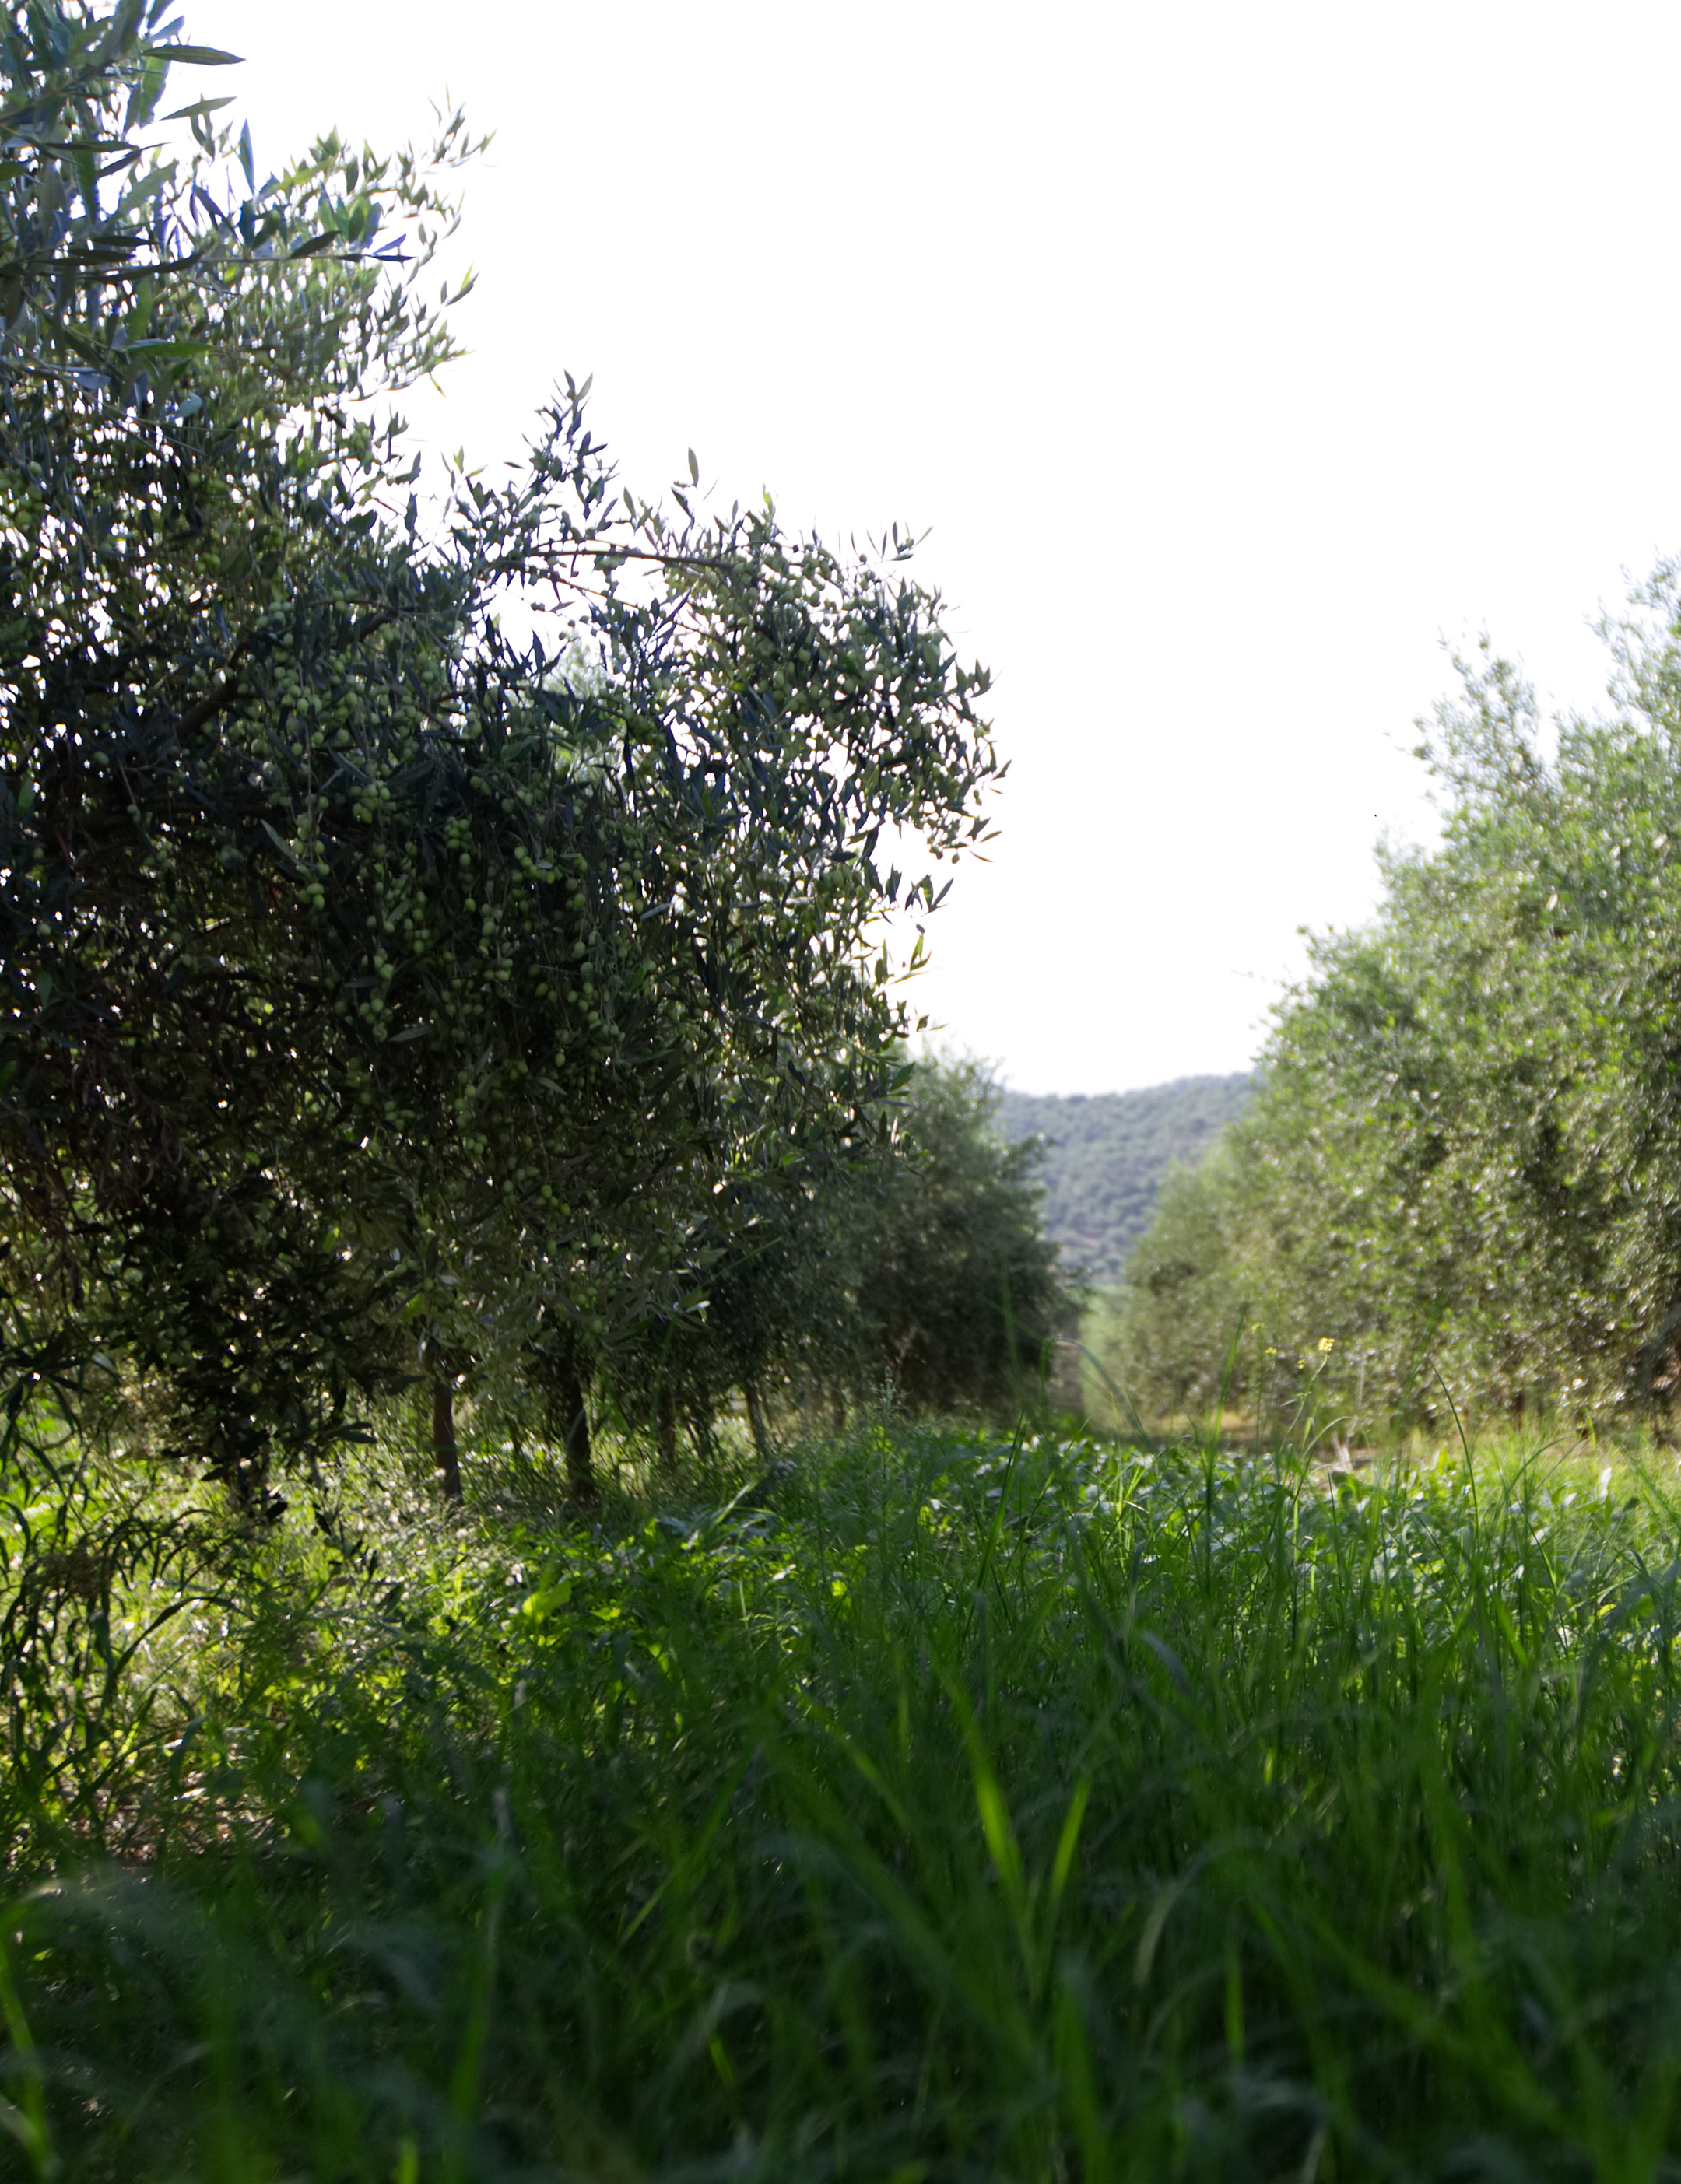 Cooperating olive groves